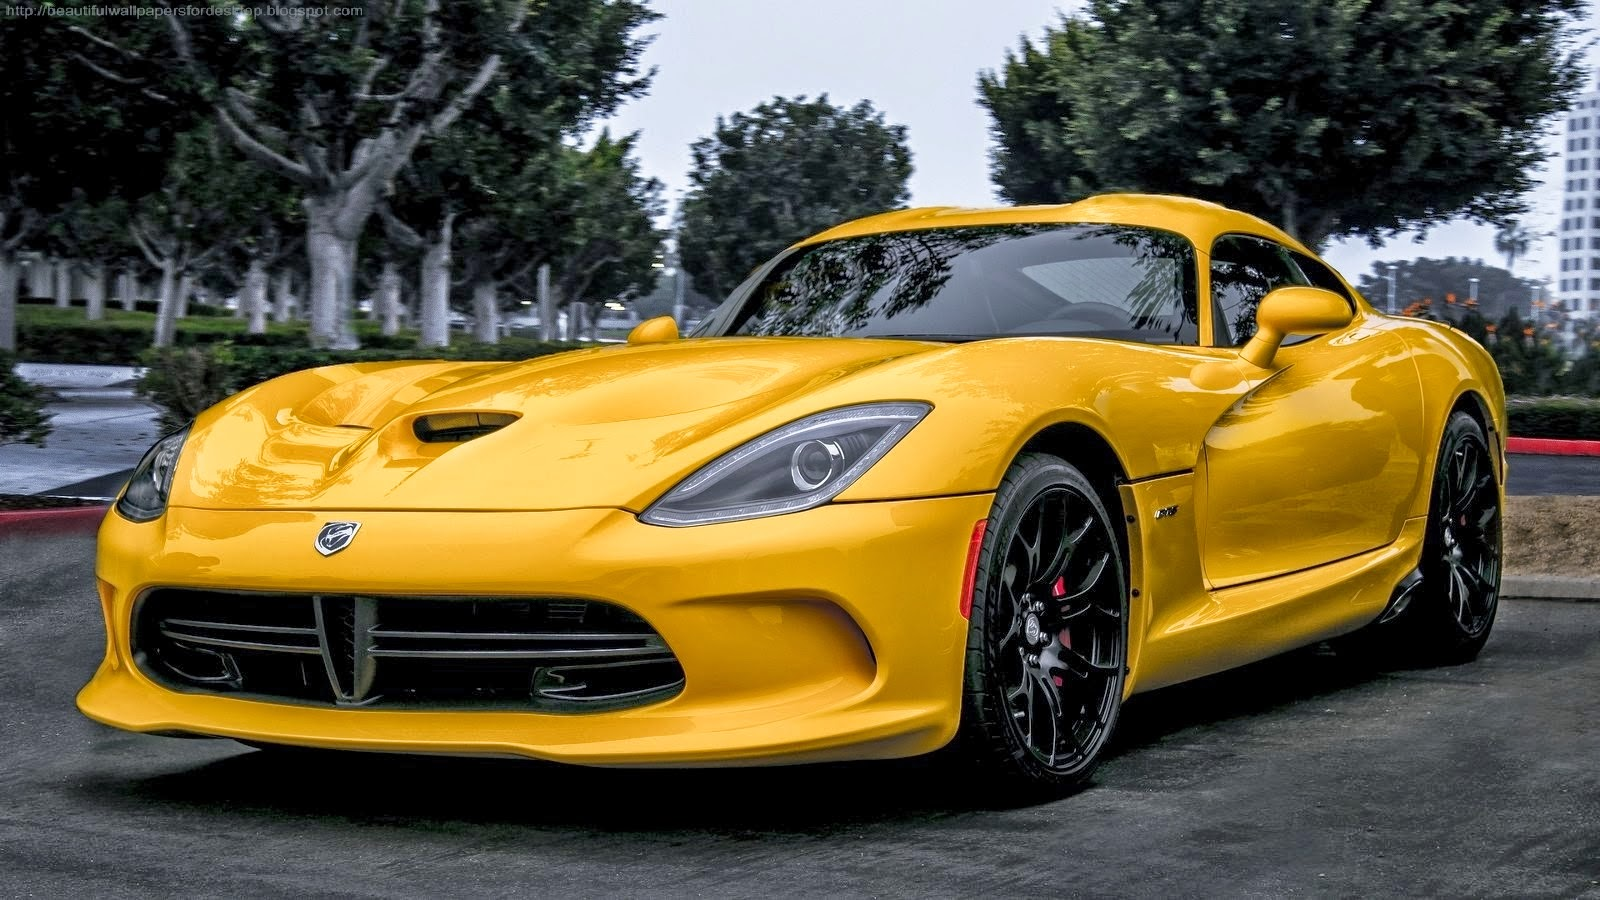 Beautiful Wallpapers Beautiful Yellow Cars Wallpapers Desktop 1600x900